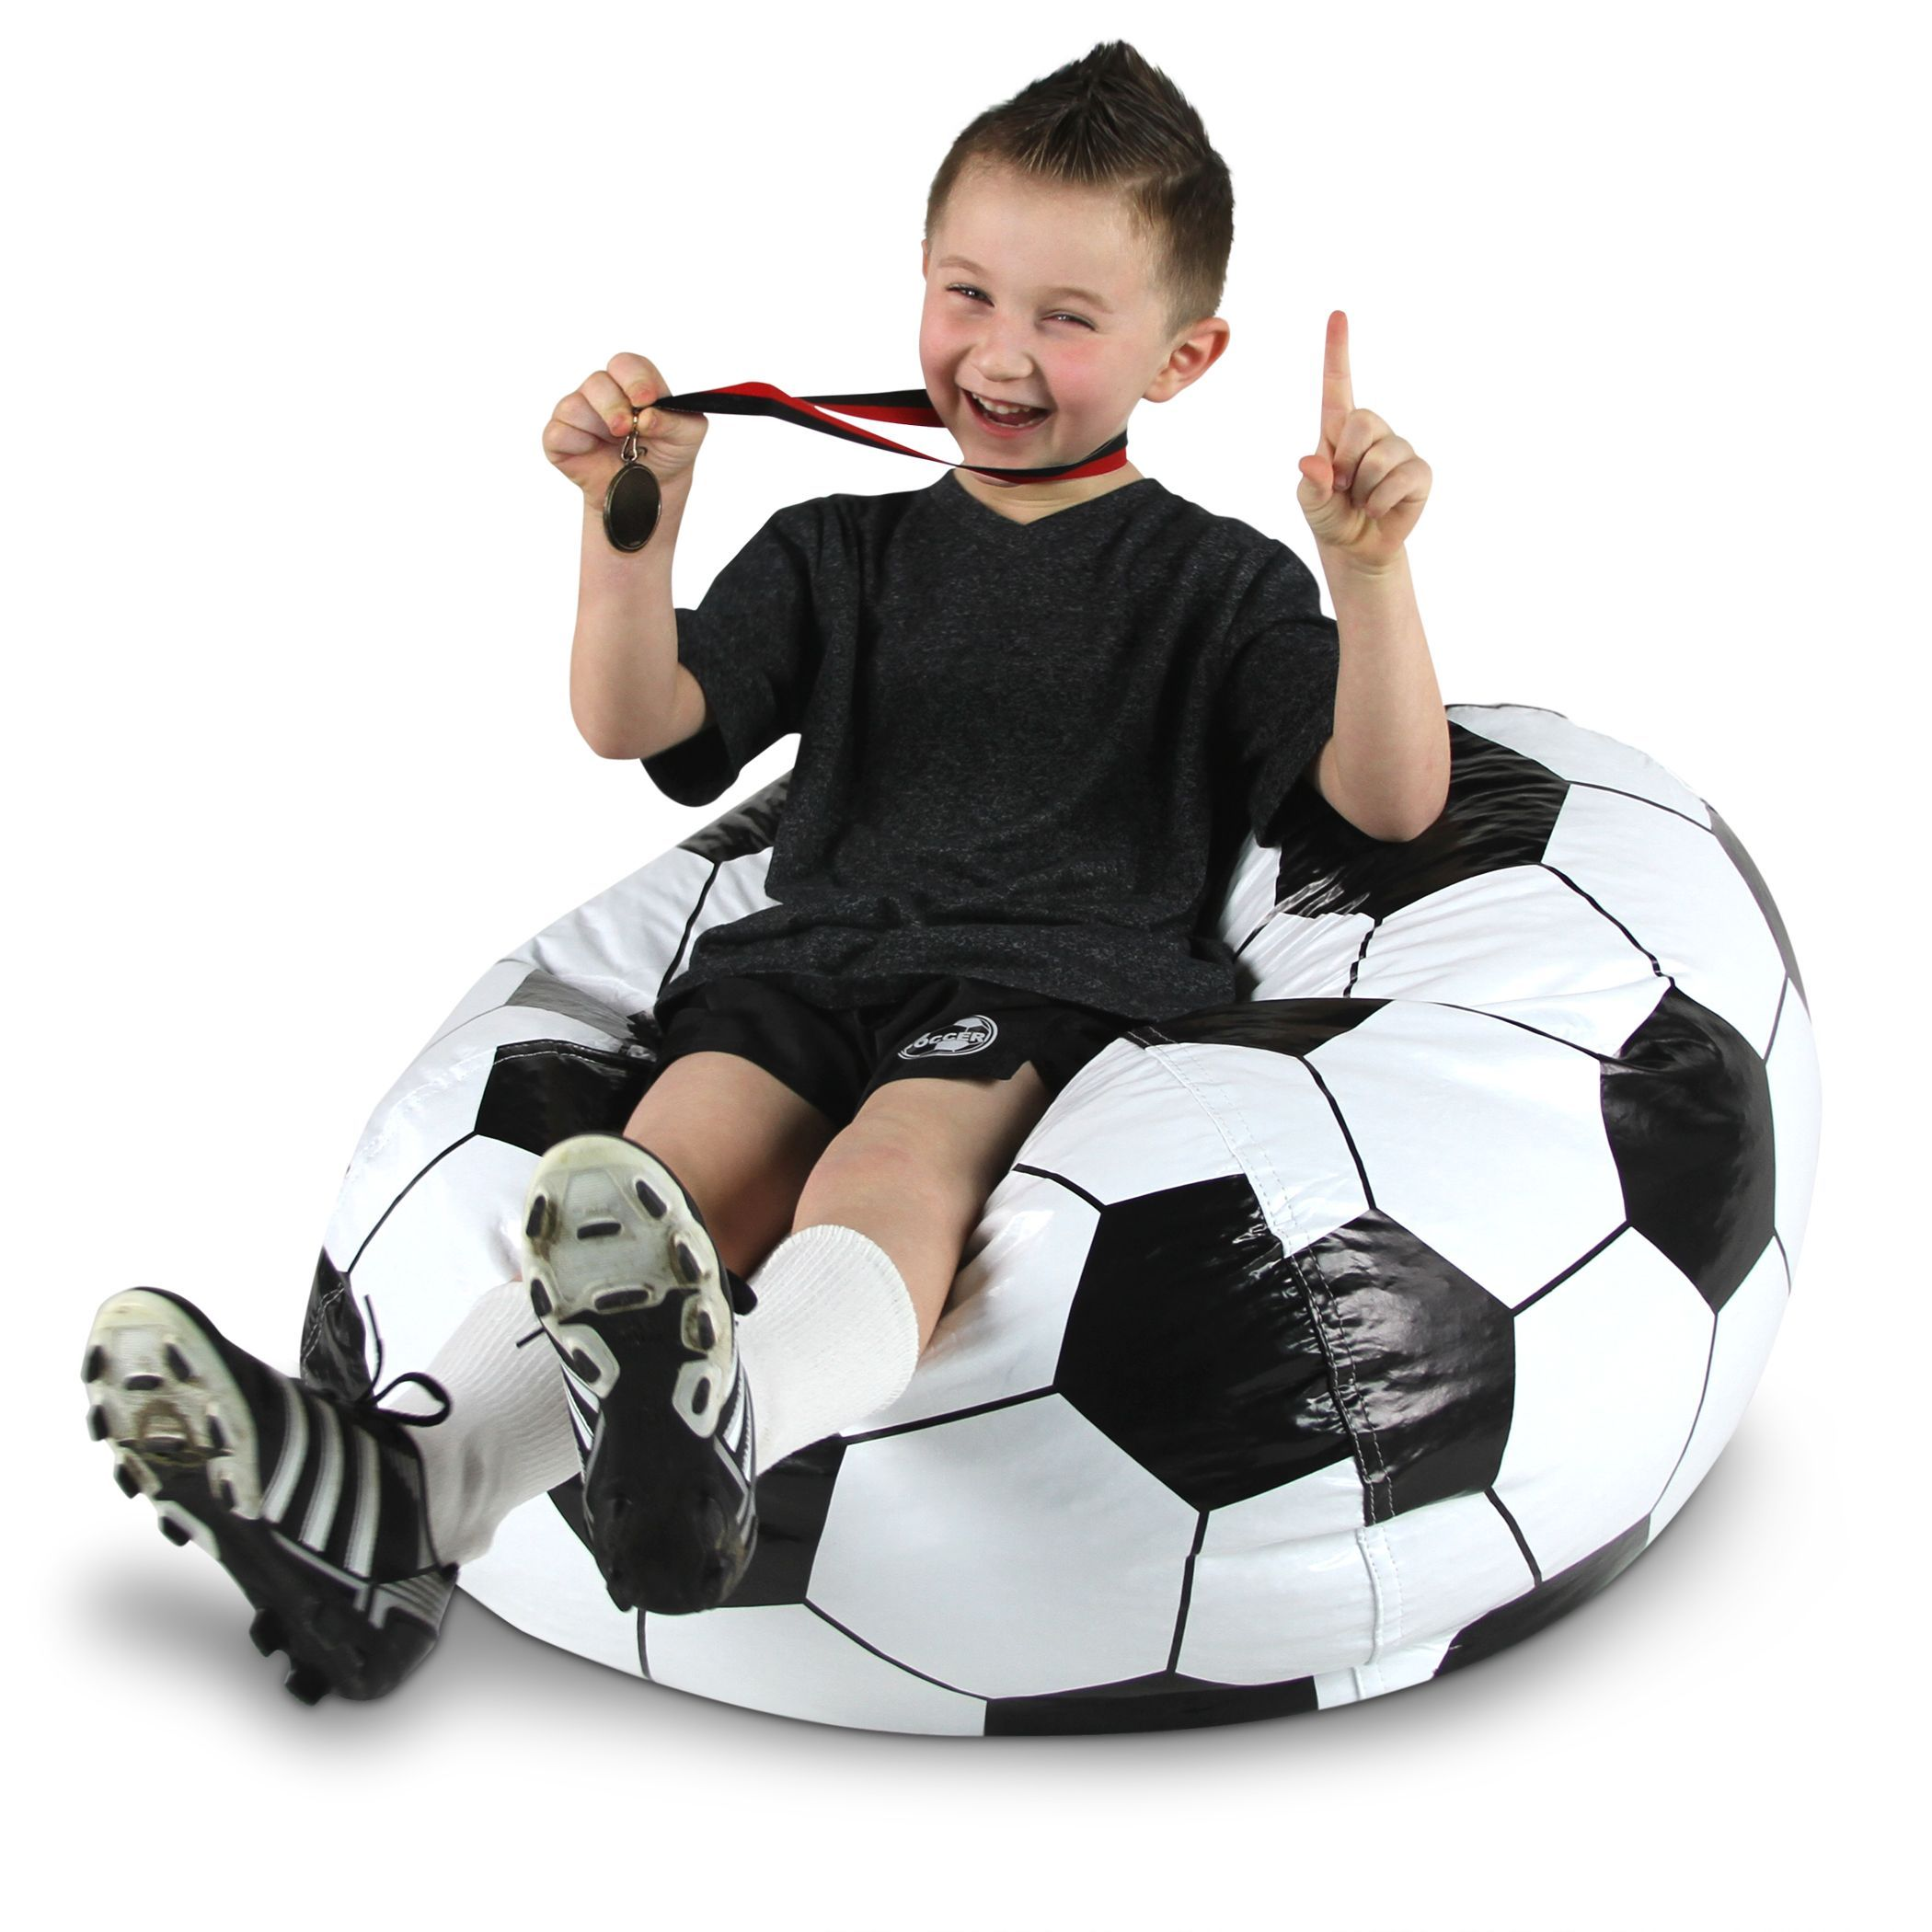 Home Jr sports, Sports, Bean bag chair